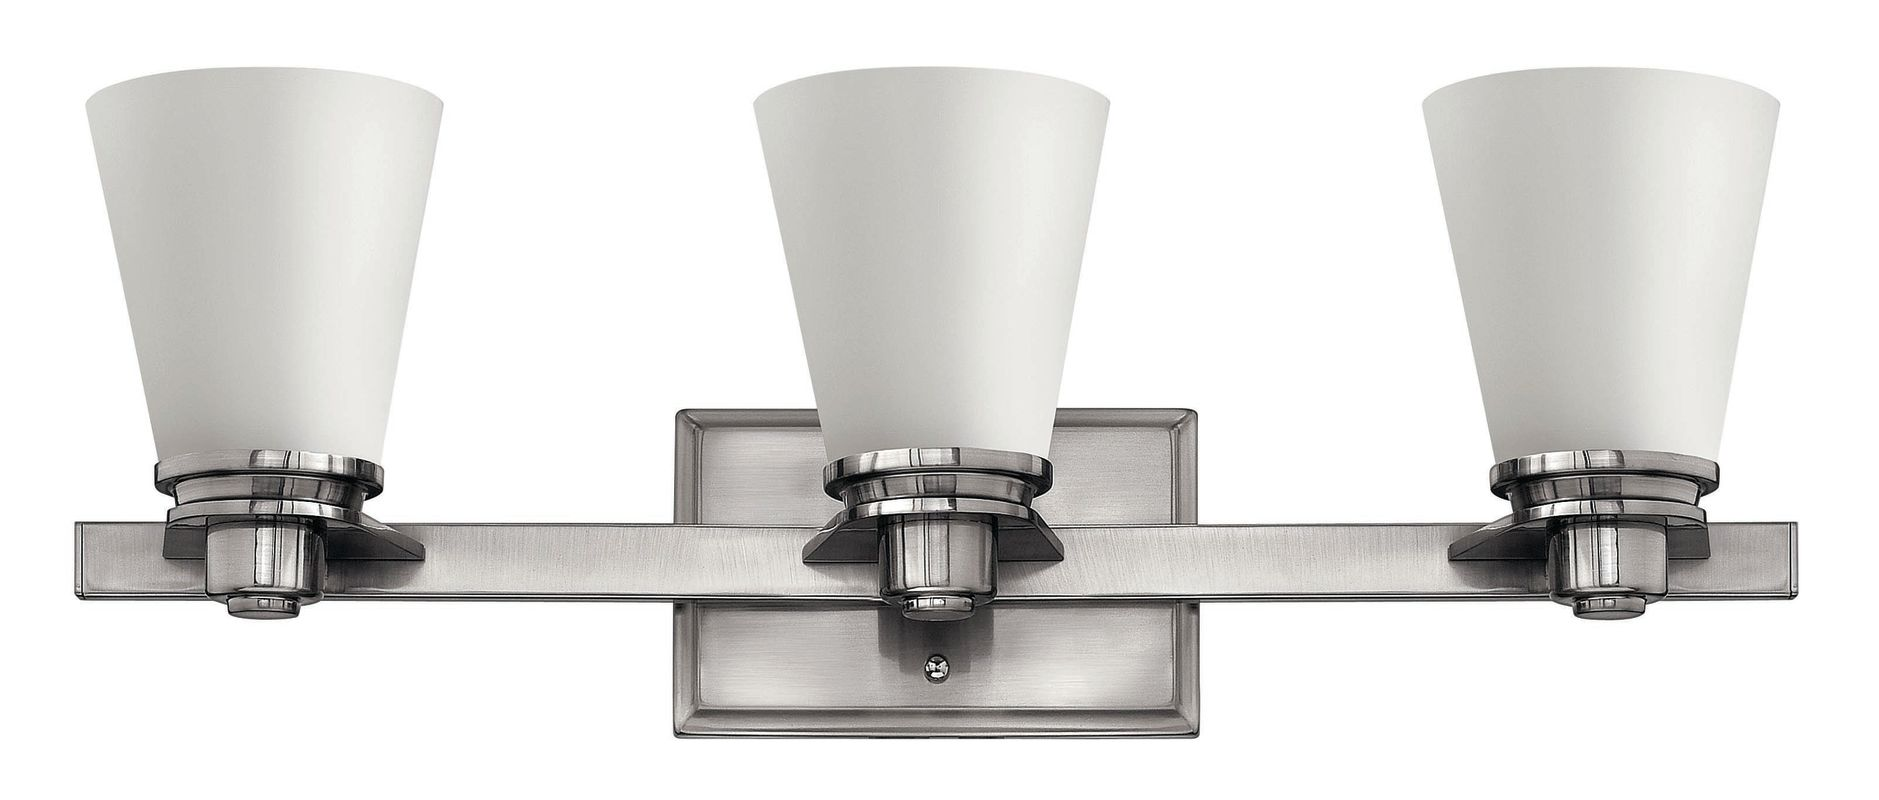 Progress Lighting Rizu Collection 3 Light Brushed Nickel: Hinkley Lighting 5553BN-LED Brushed Nickel 3 Light 23